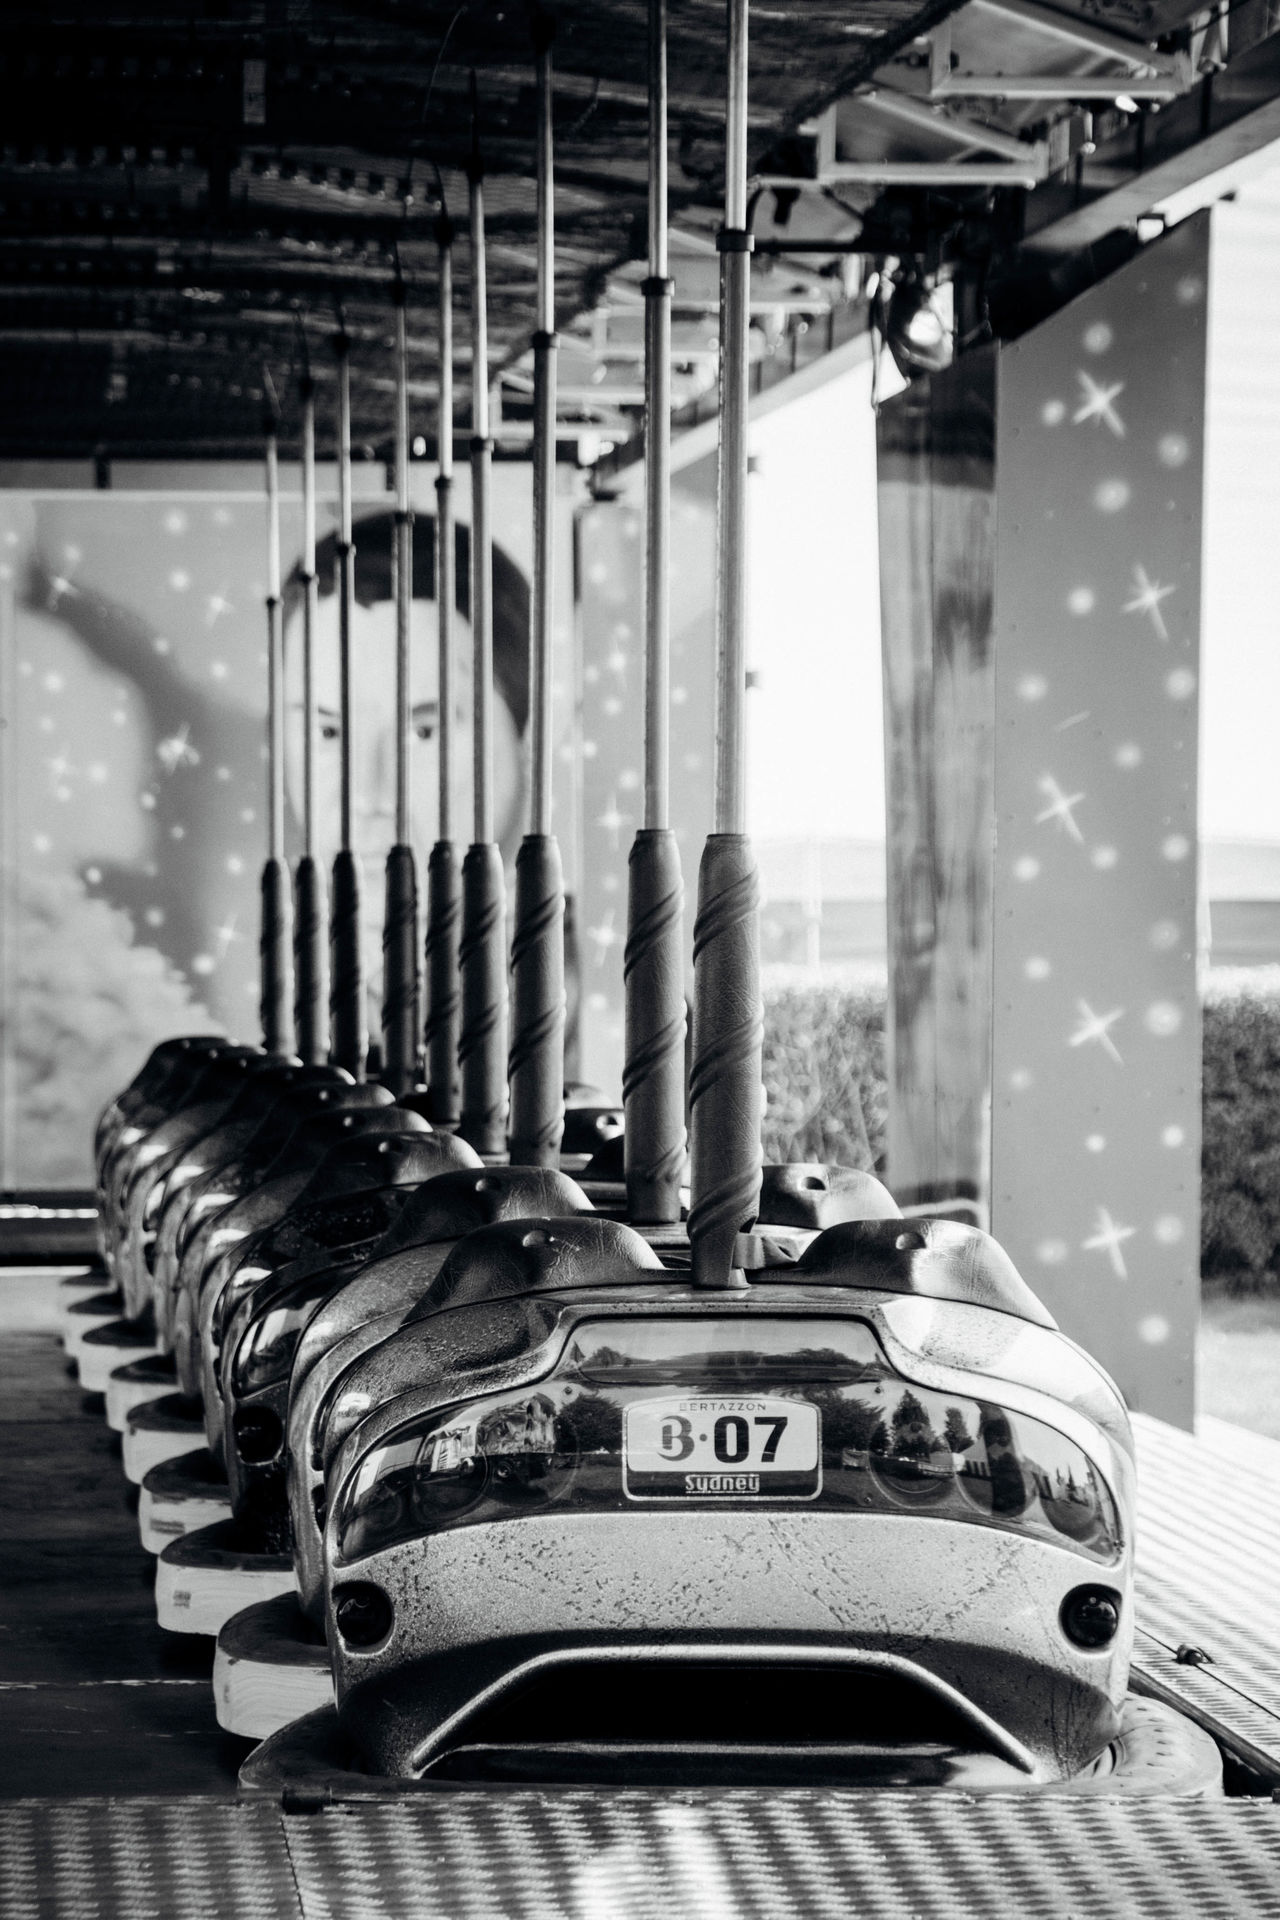 Blackandwhite Closed Dodgem Dodgem Cars Dodgems Fairground Fairground Attraction Fairground Ride Focus On Foreground In A Row No People Selective Focus